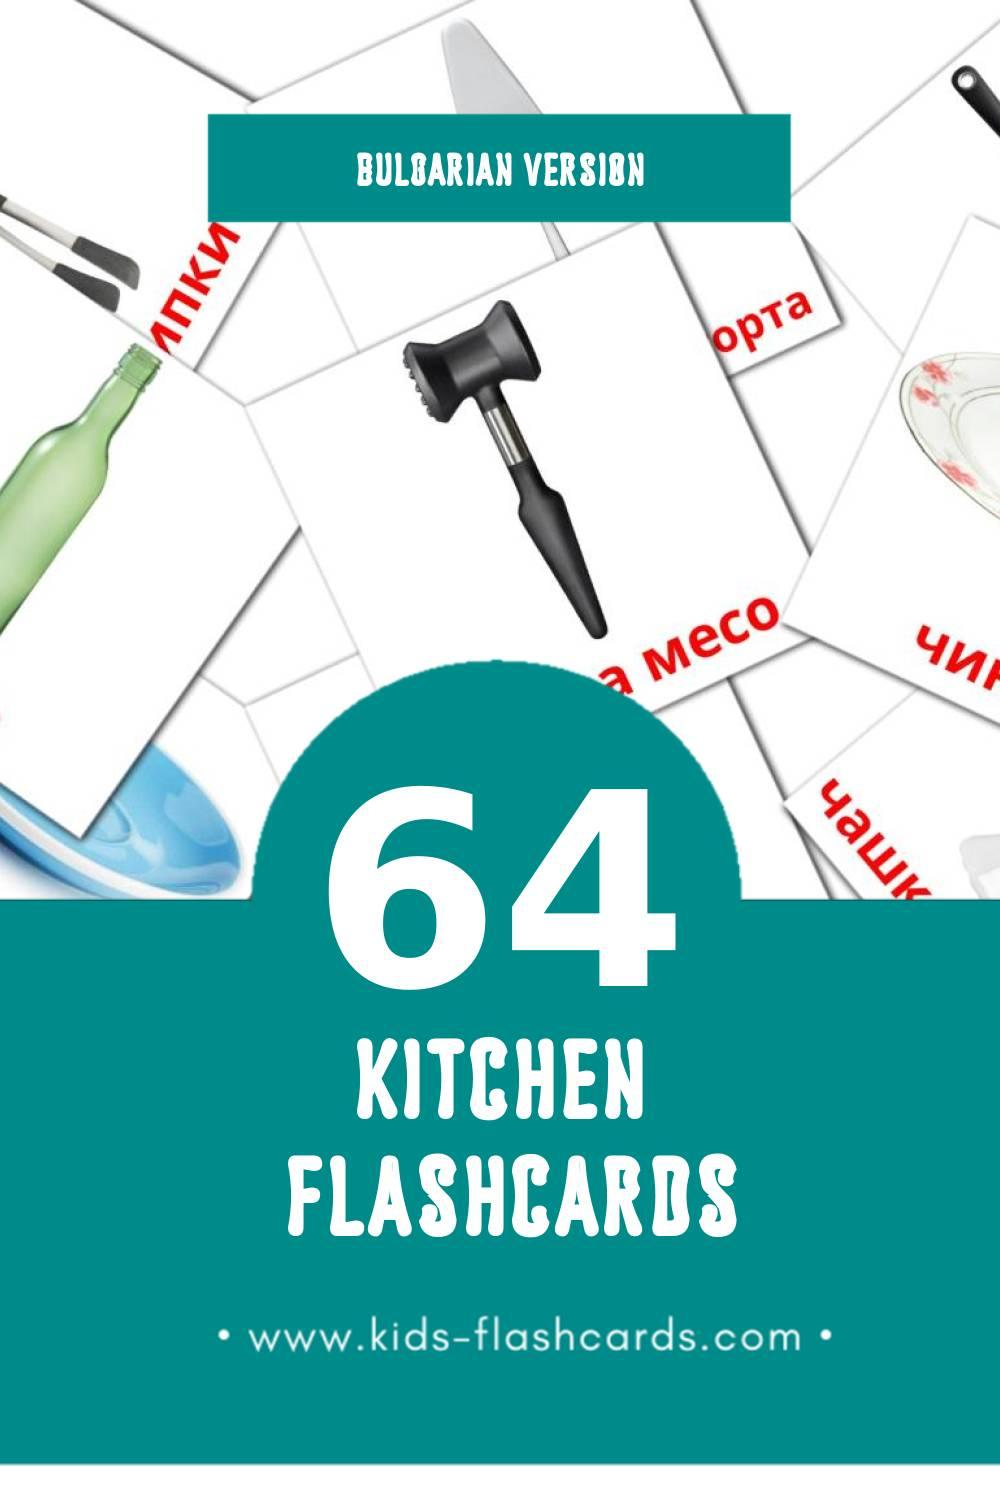 Visual Кухня Flashcards for Toddlers (64 cards in Bulgarian)